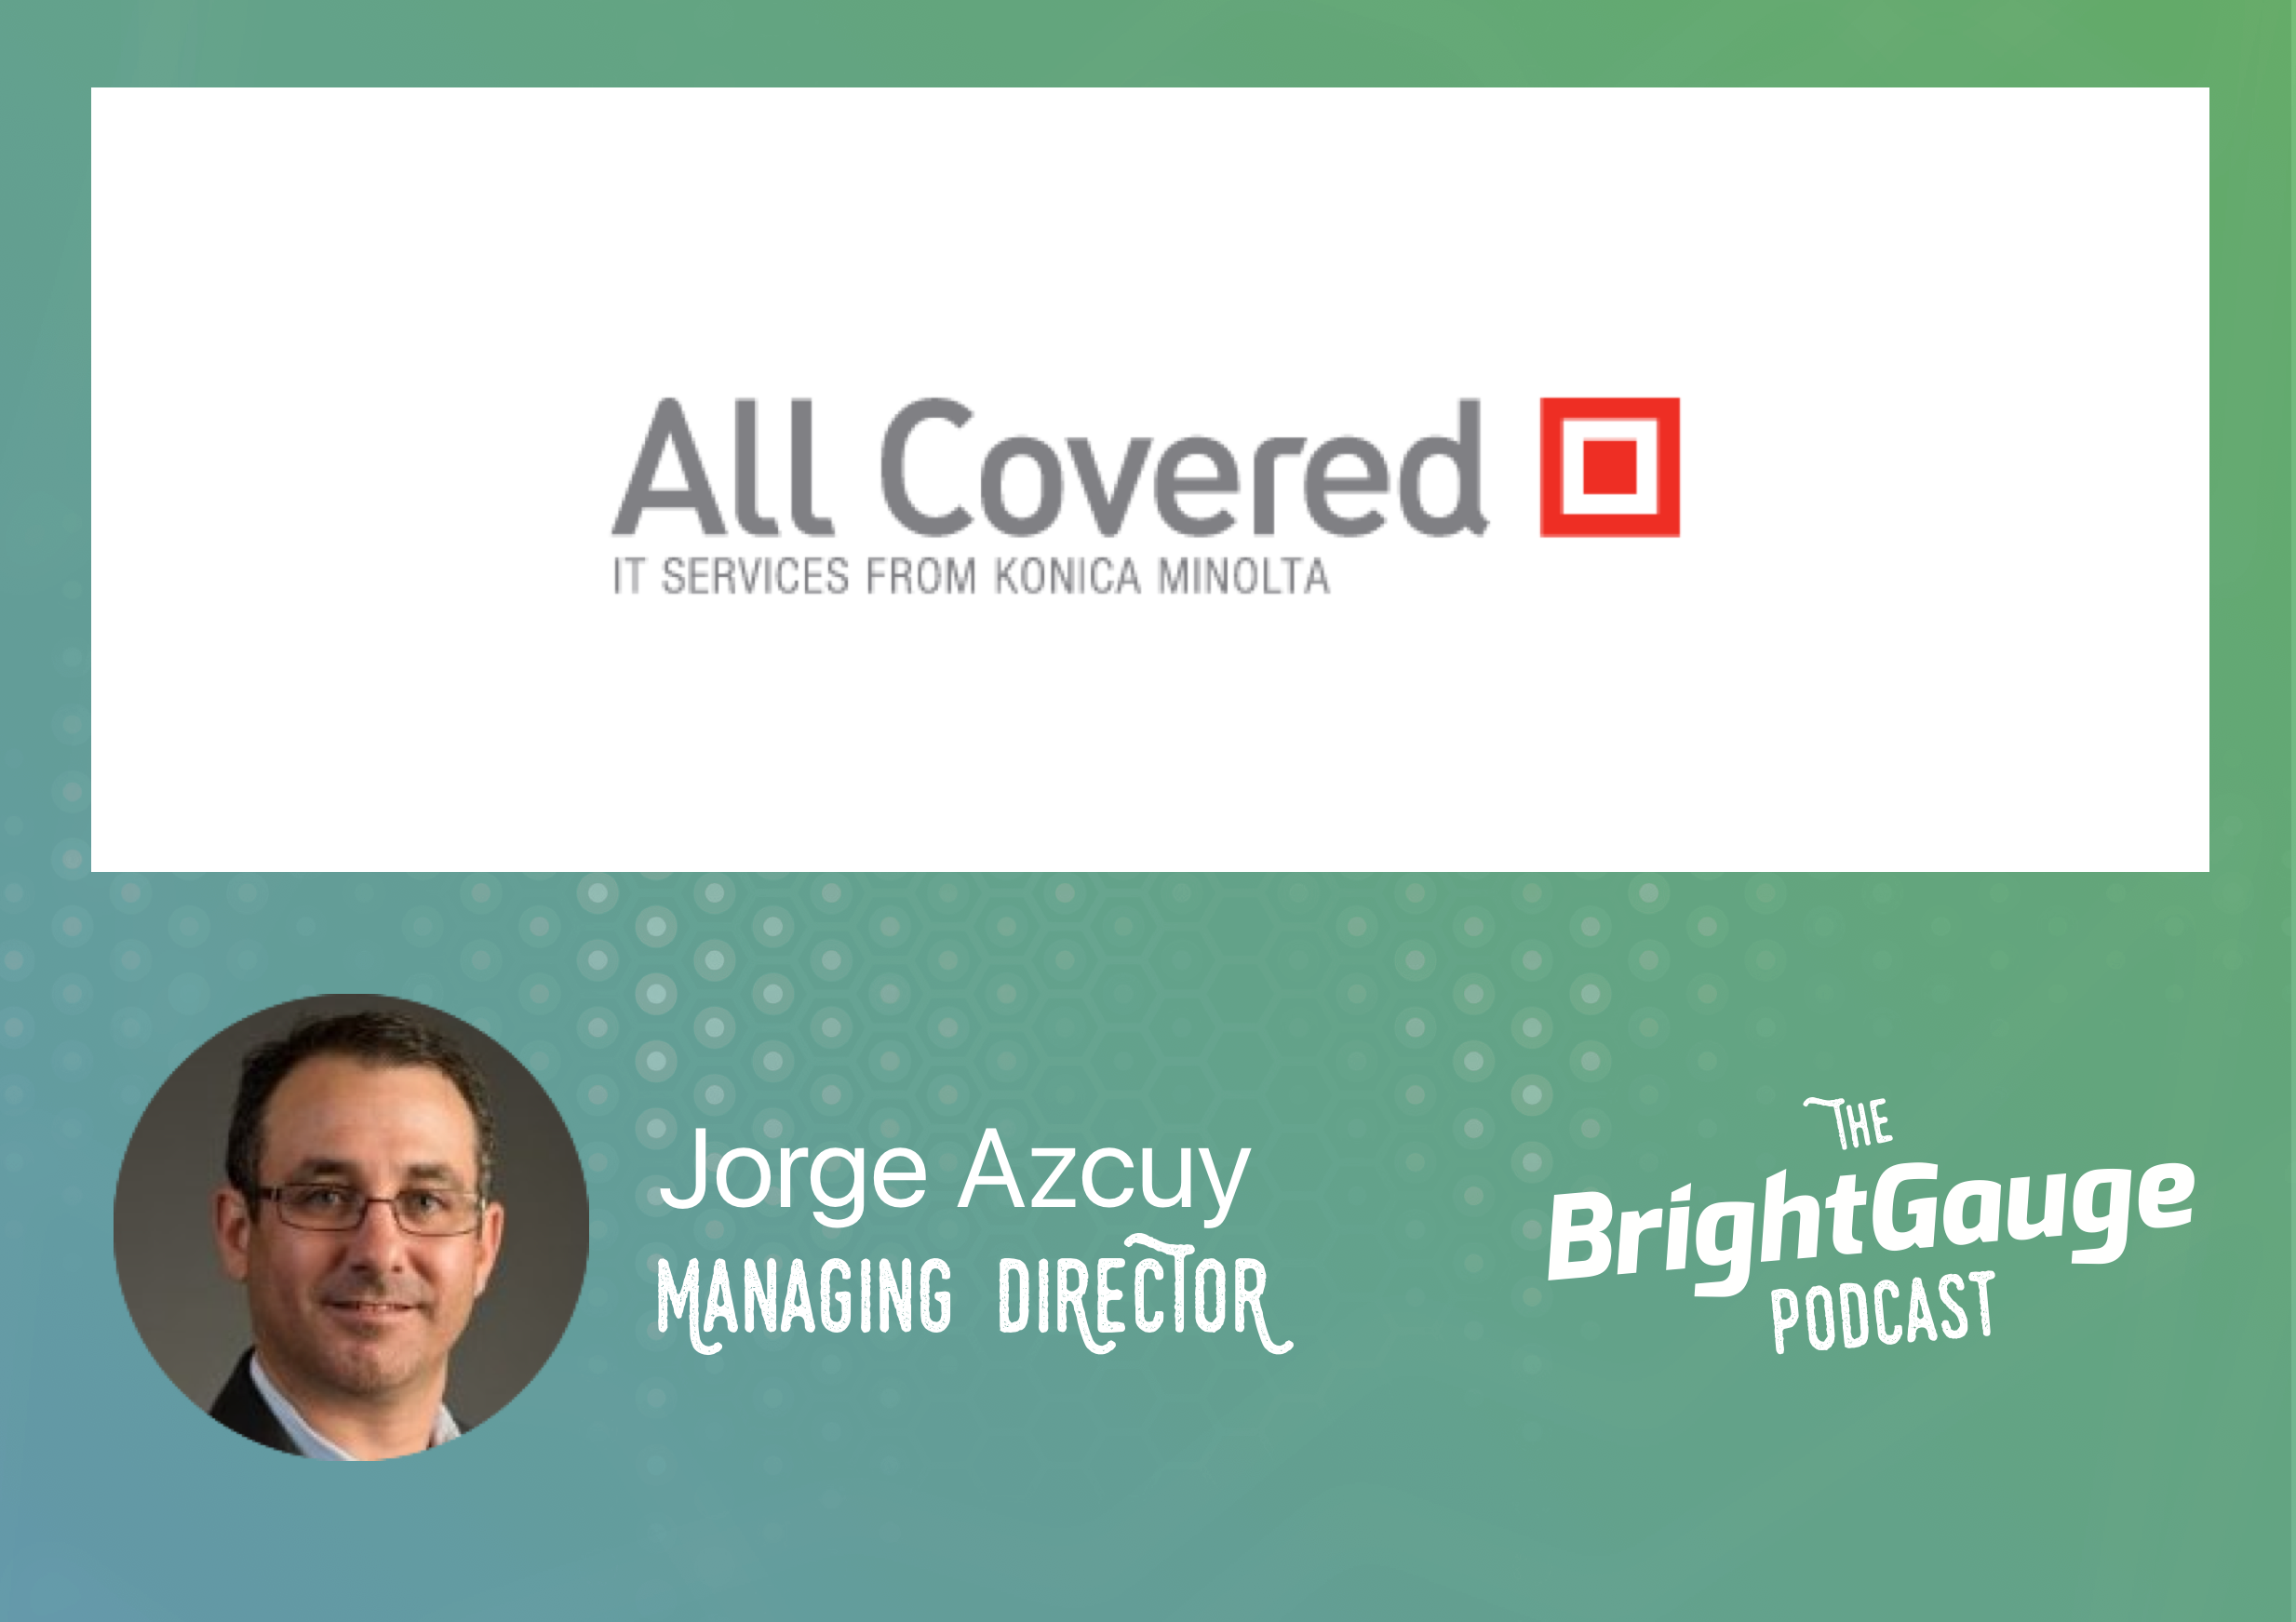 [Podcast] Episode 4 with Jorge Azcuy of All Covered